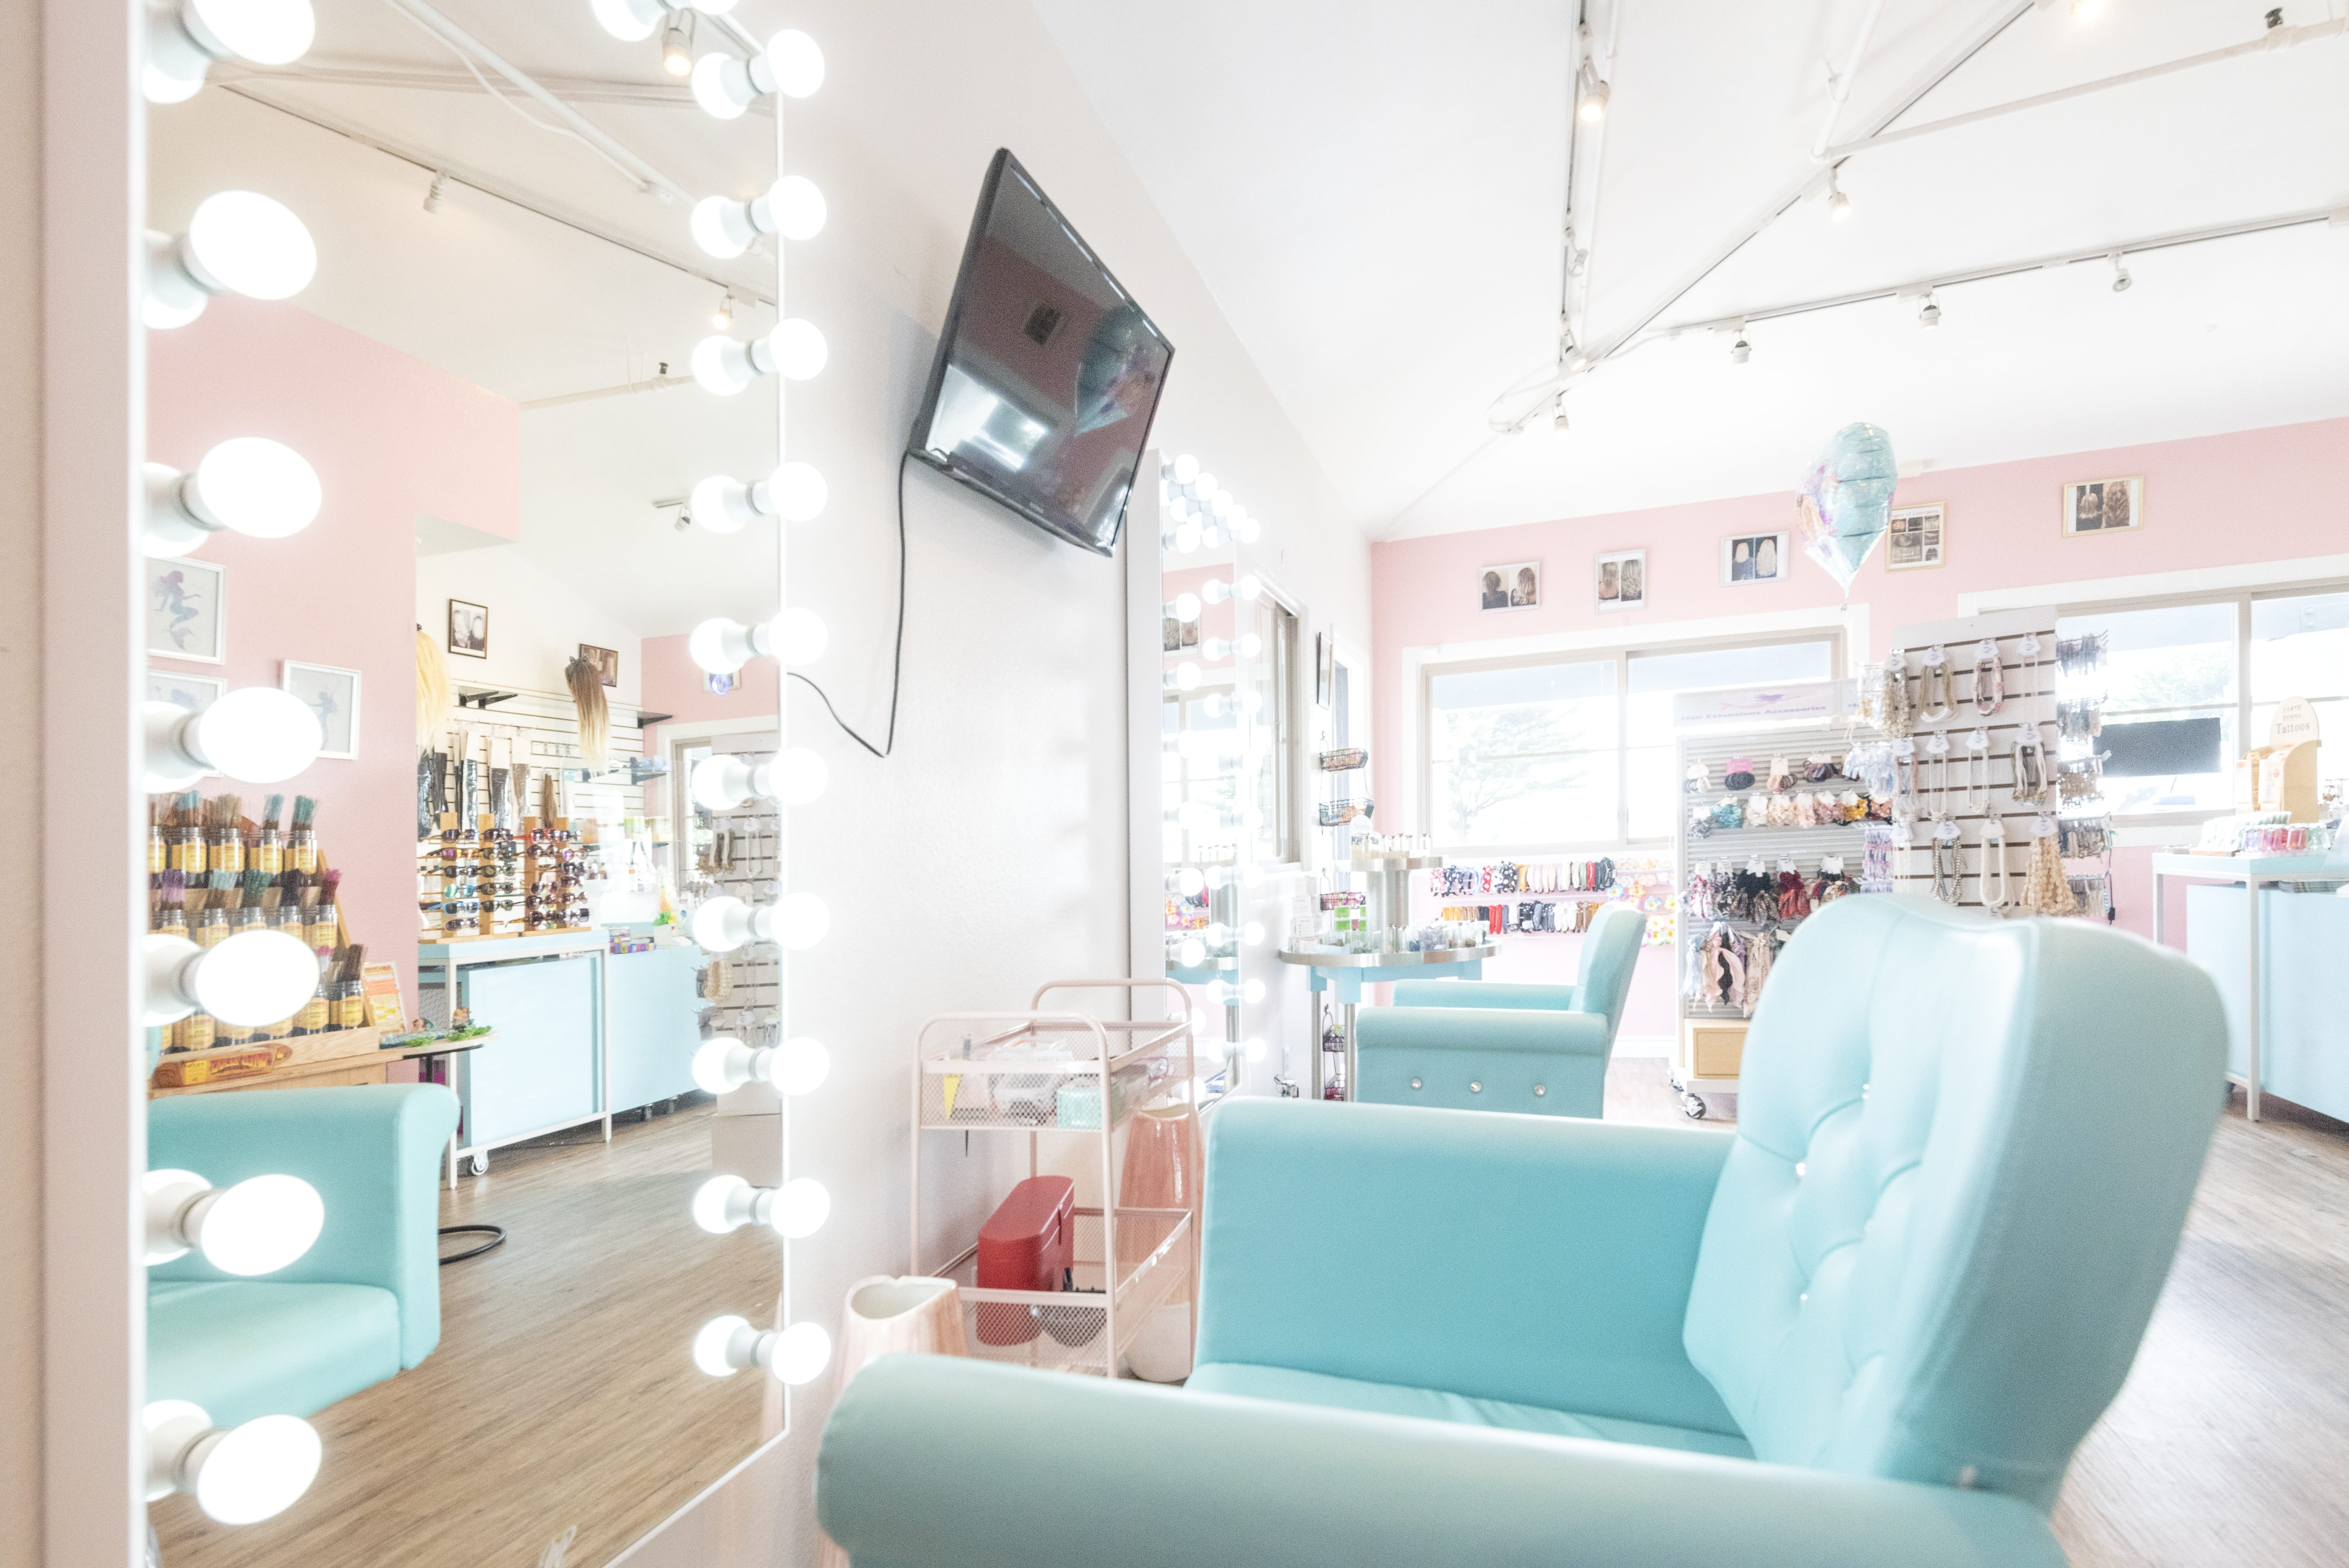 Hair extensions by Shirley retail space